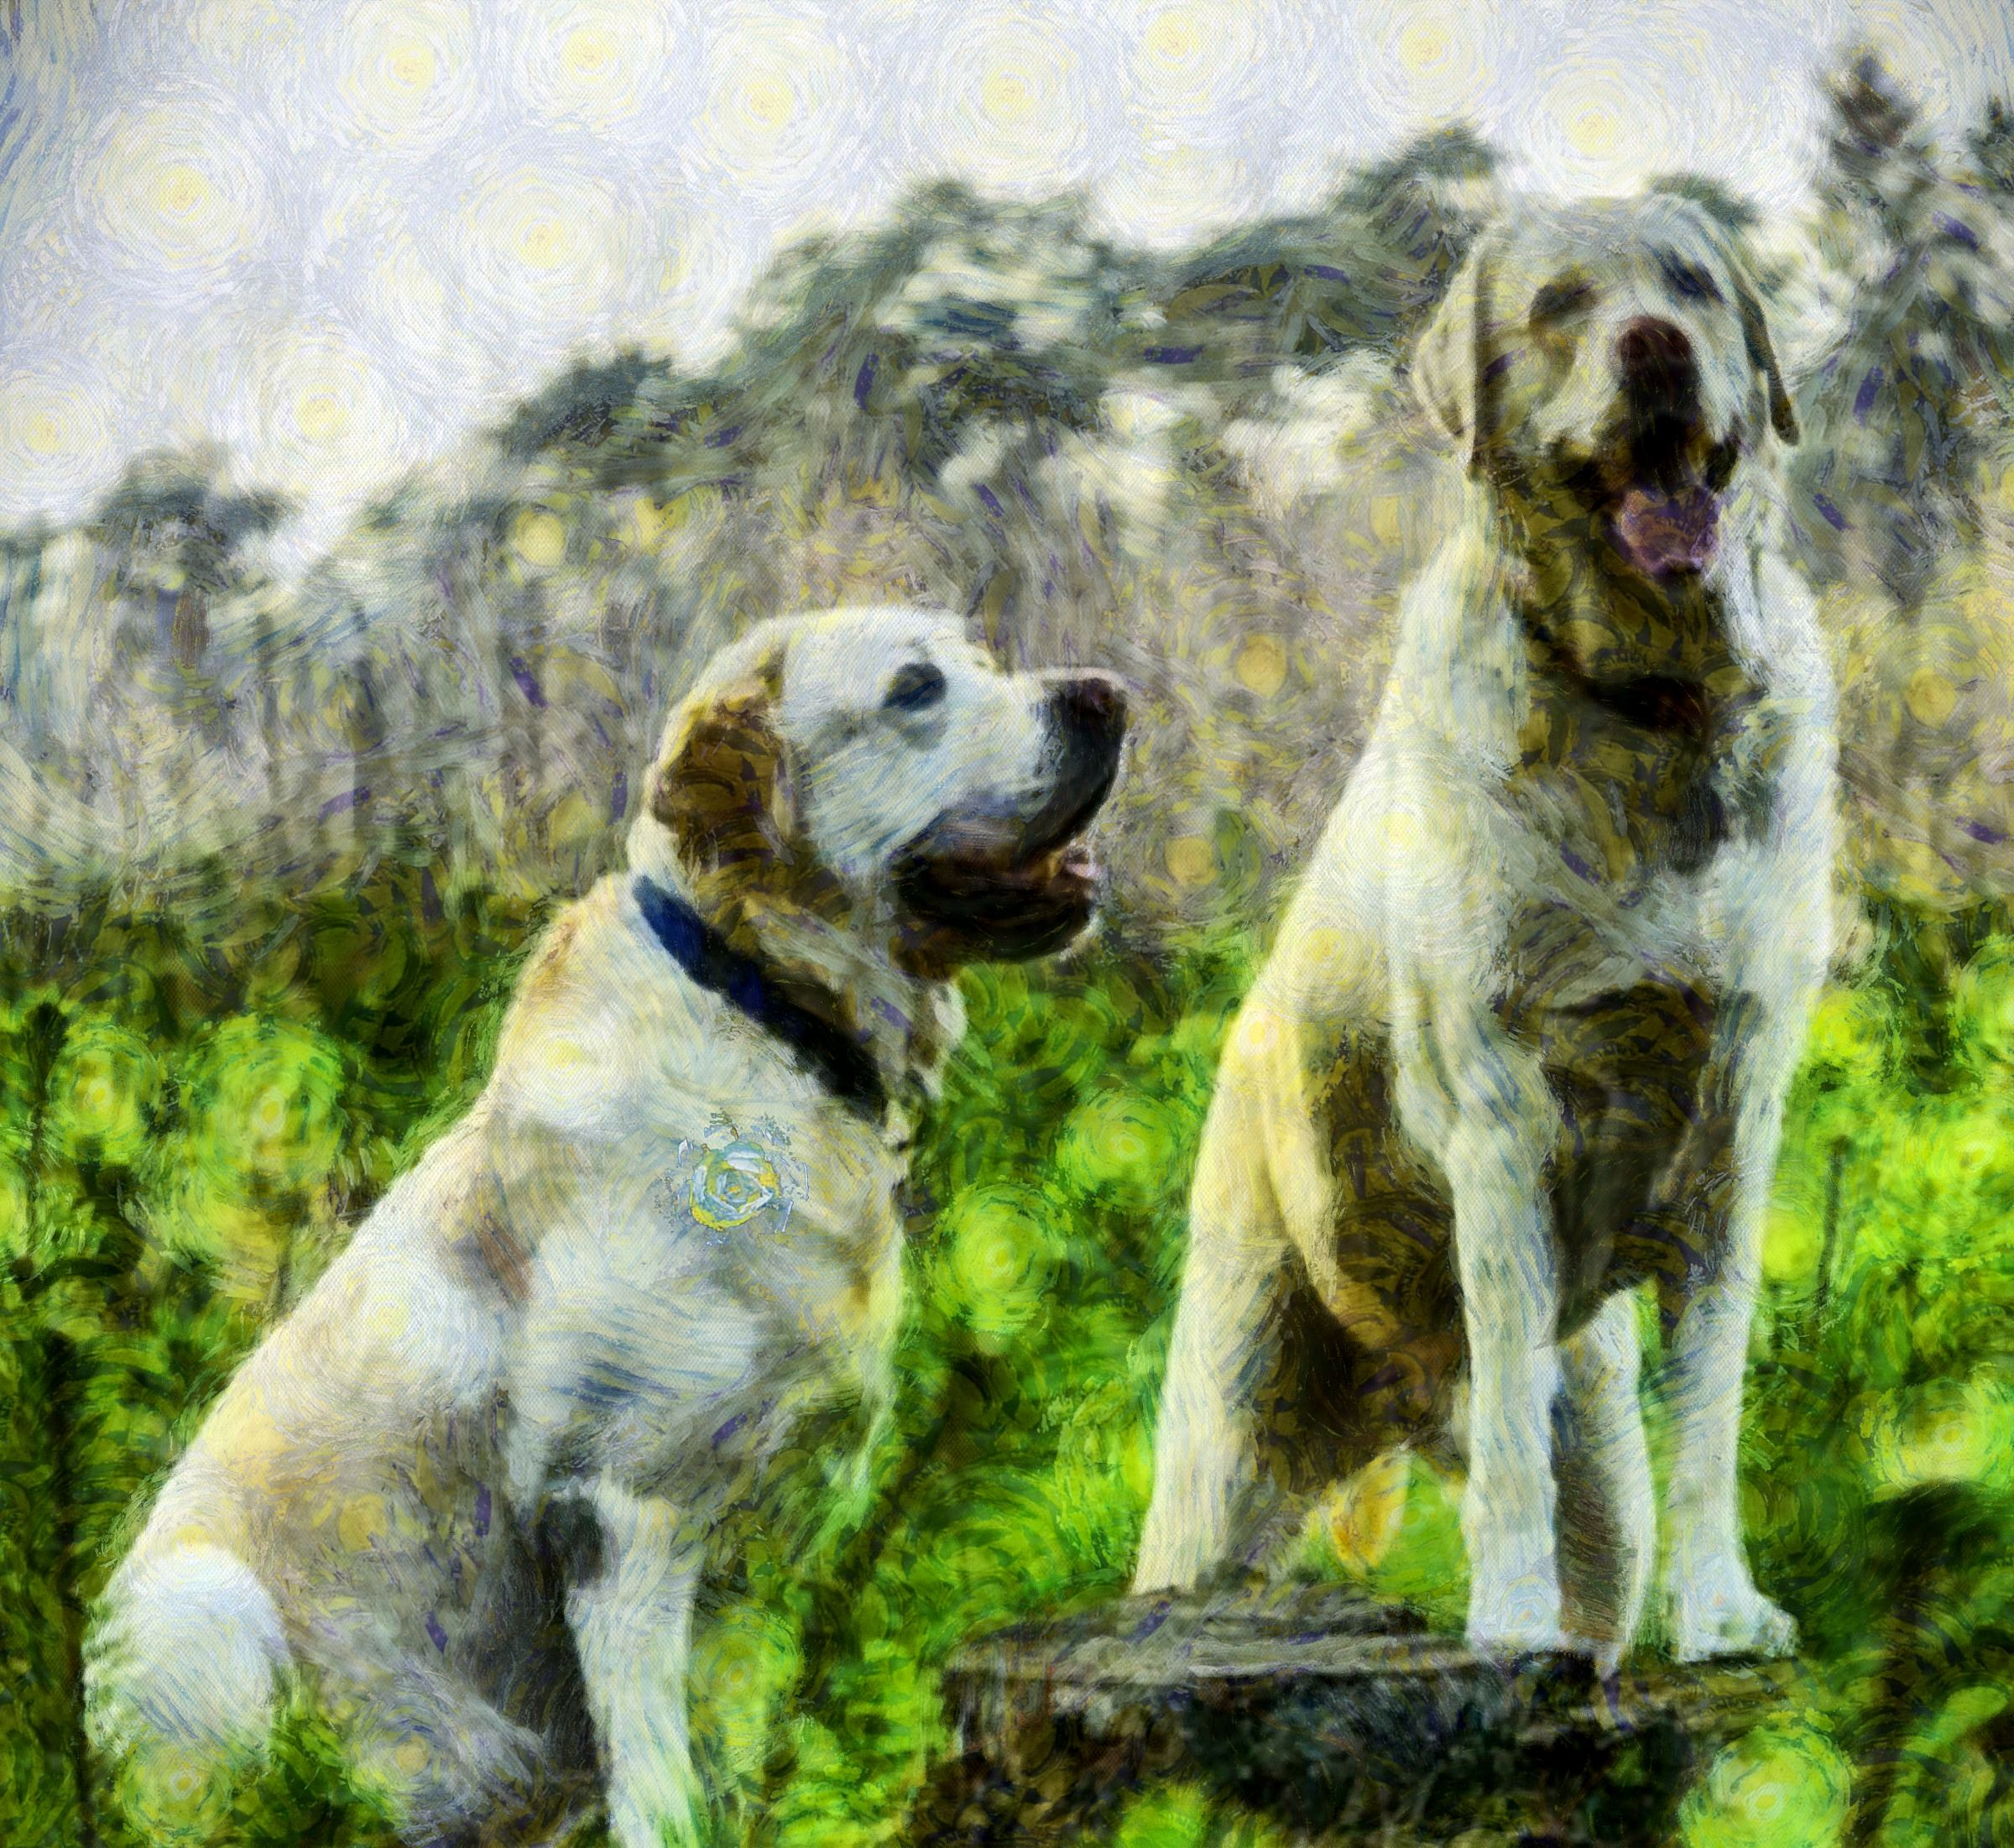 ALT TEXT - dog, two dogs, two white dogs, stock free photos, public domain image, download image for free